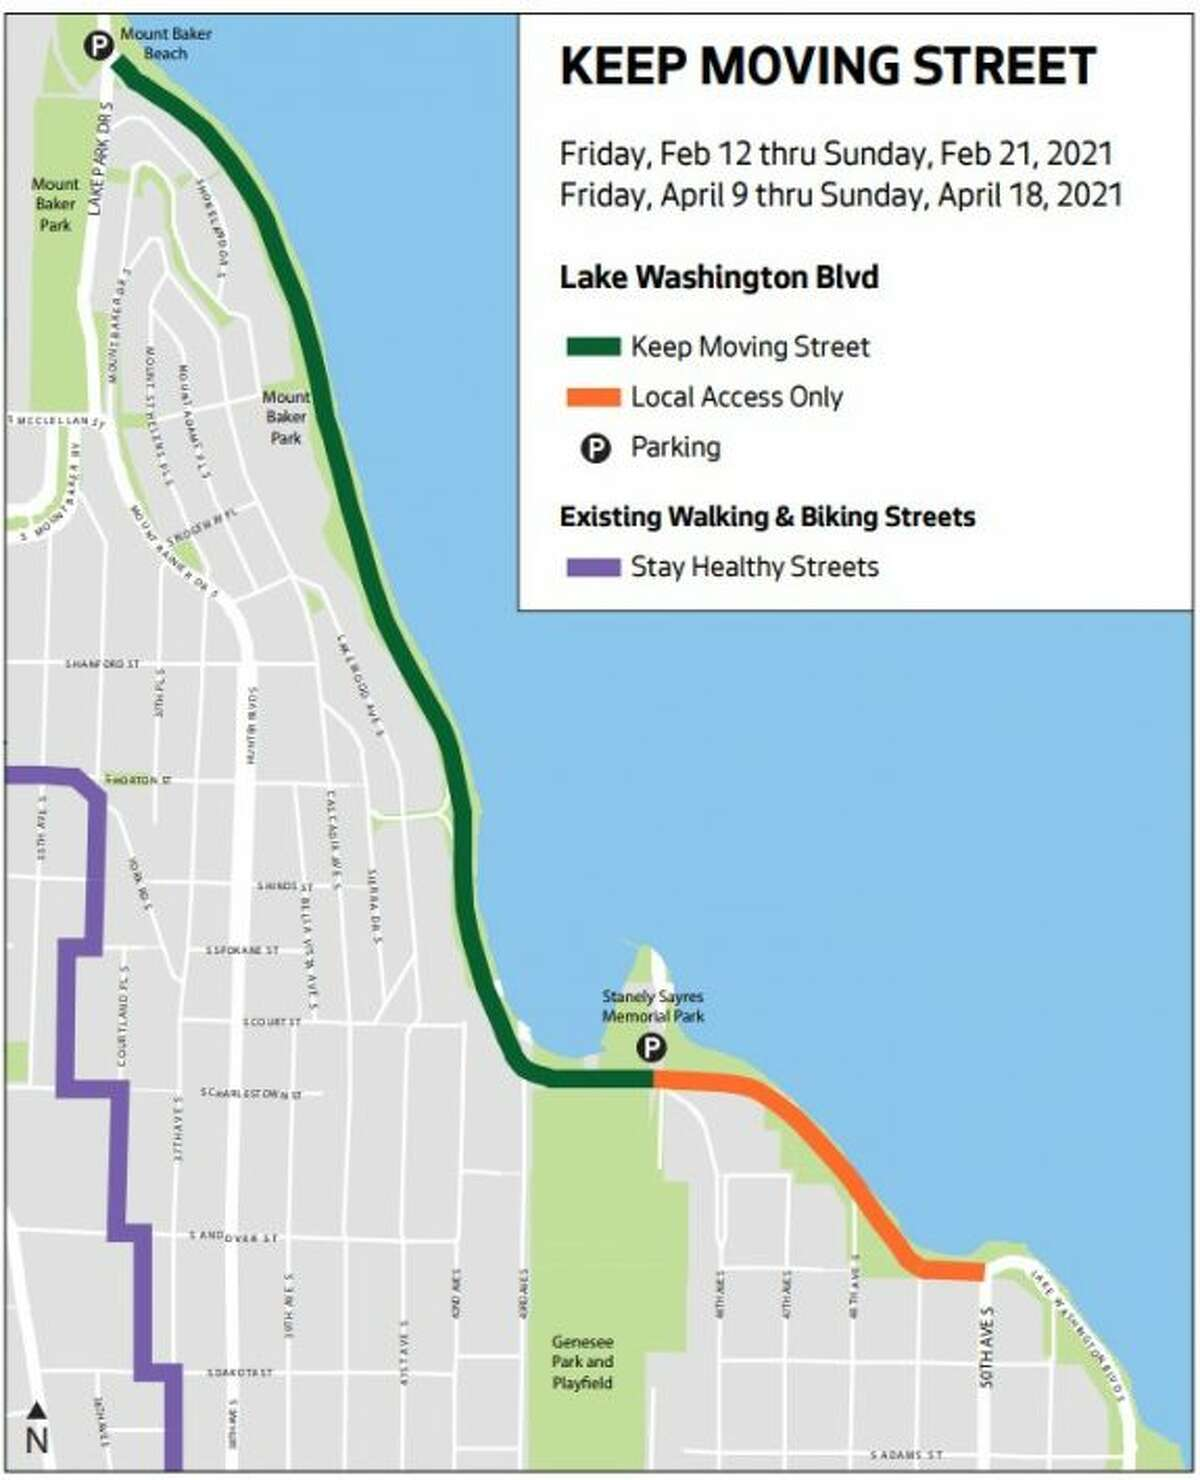 New portion of Stay Healthy street to open Friday